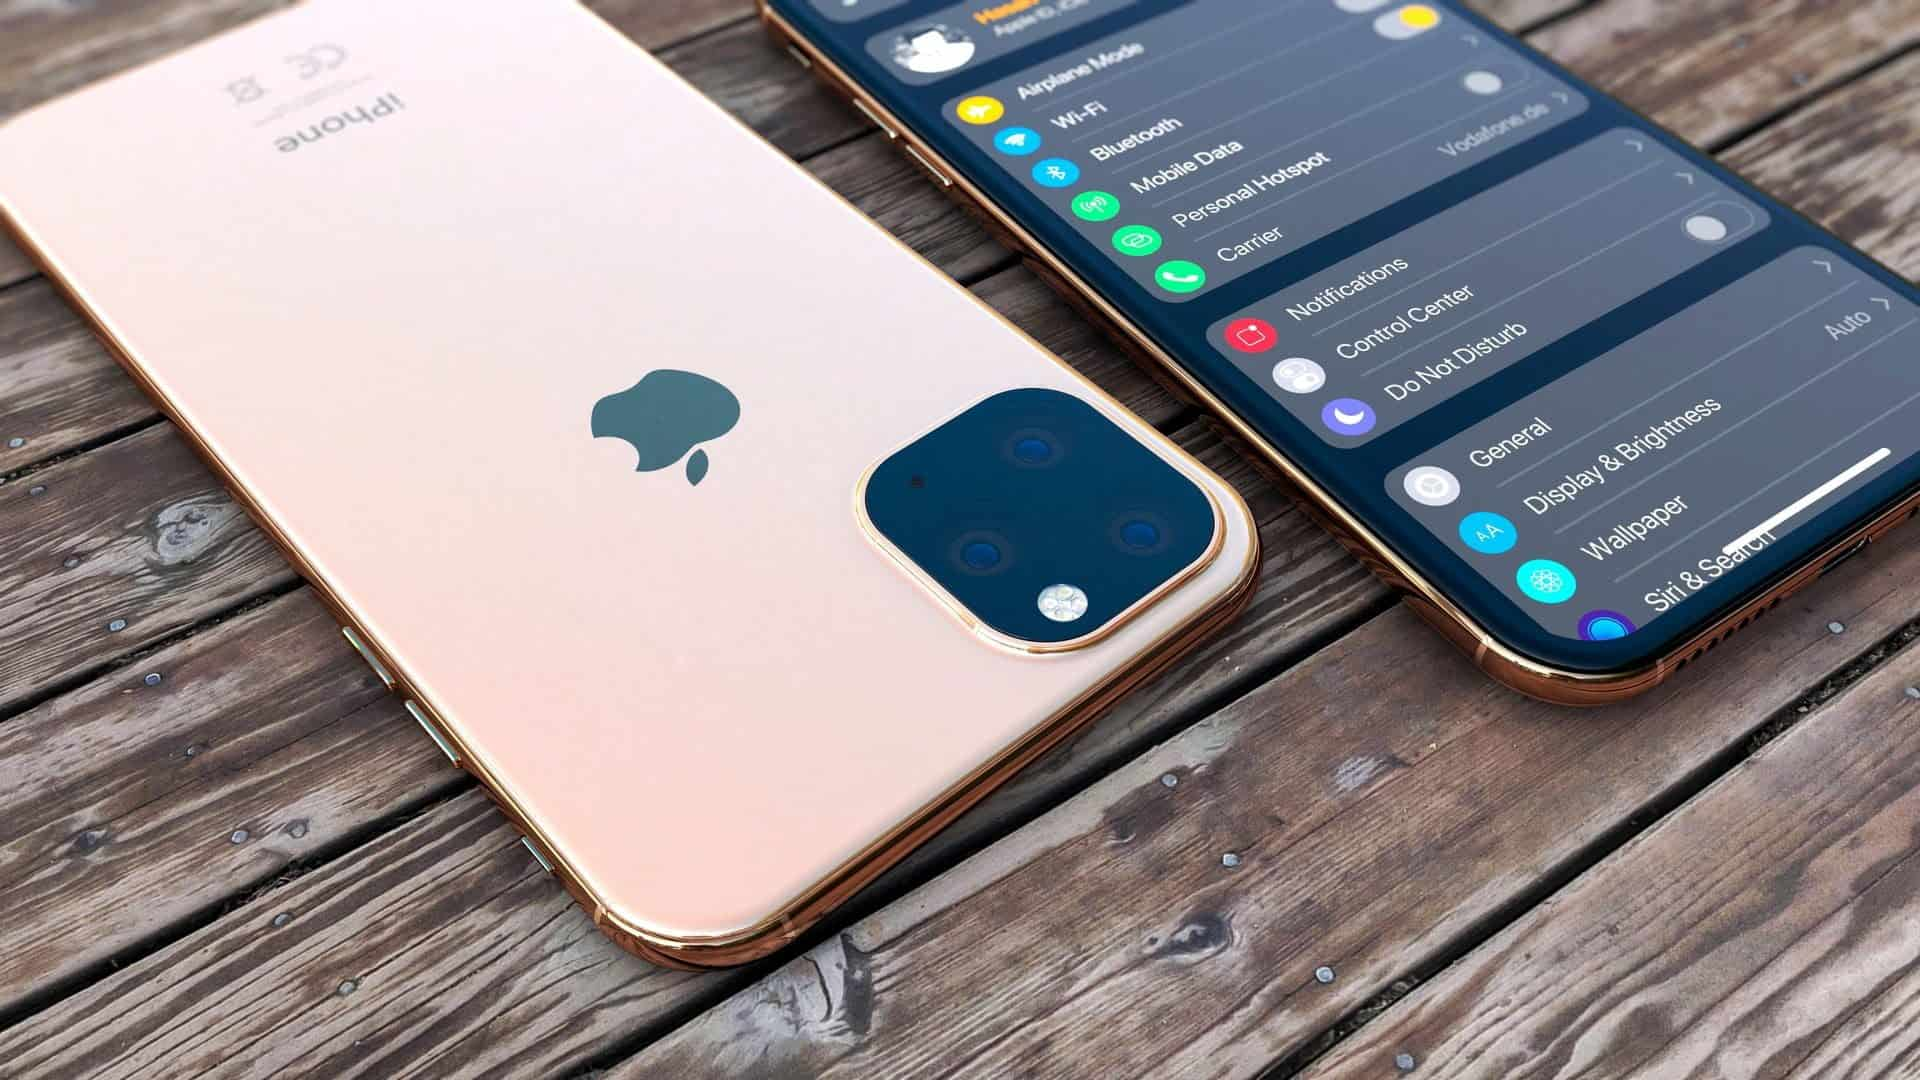 Should You Buy iPhone 11 or Wait for the iPhone 12?